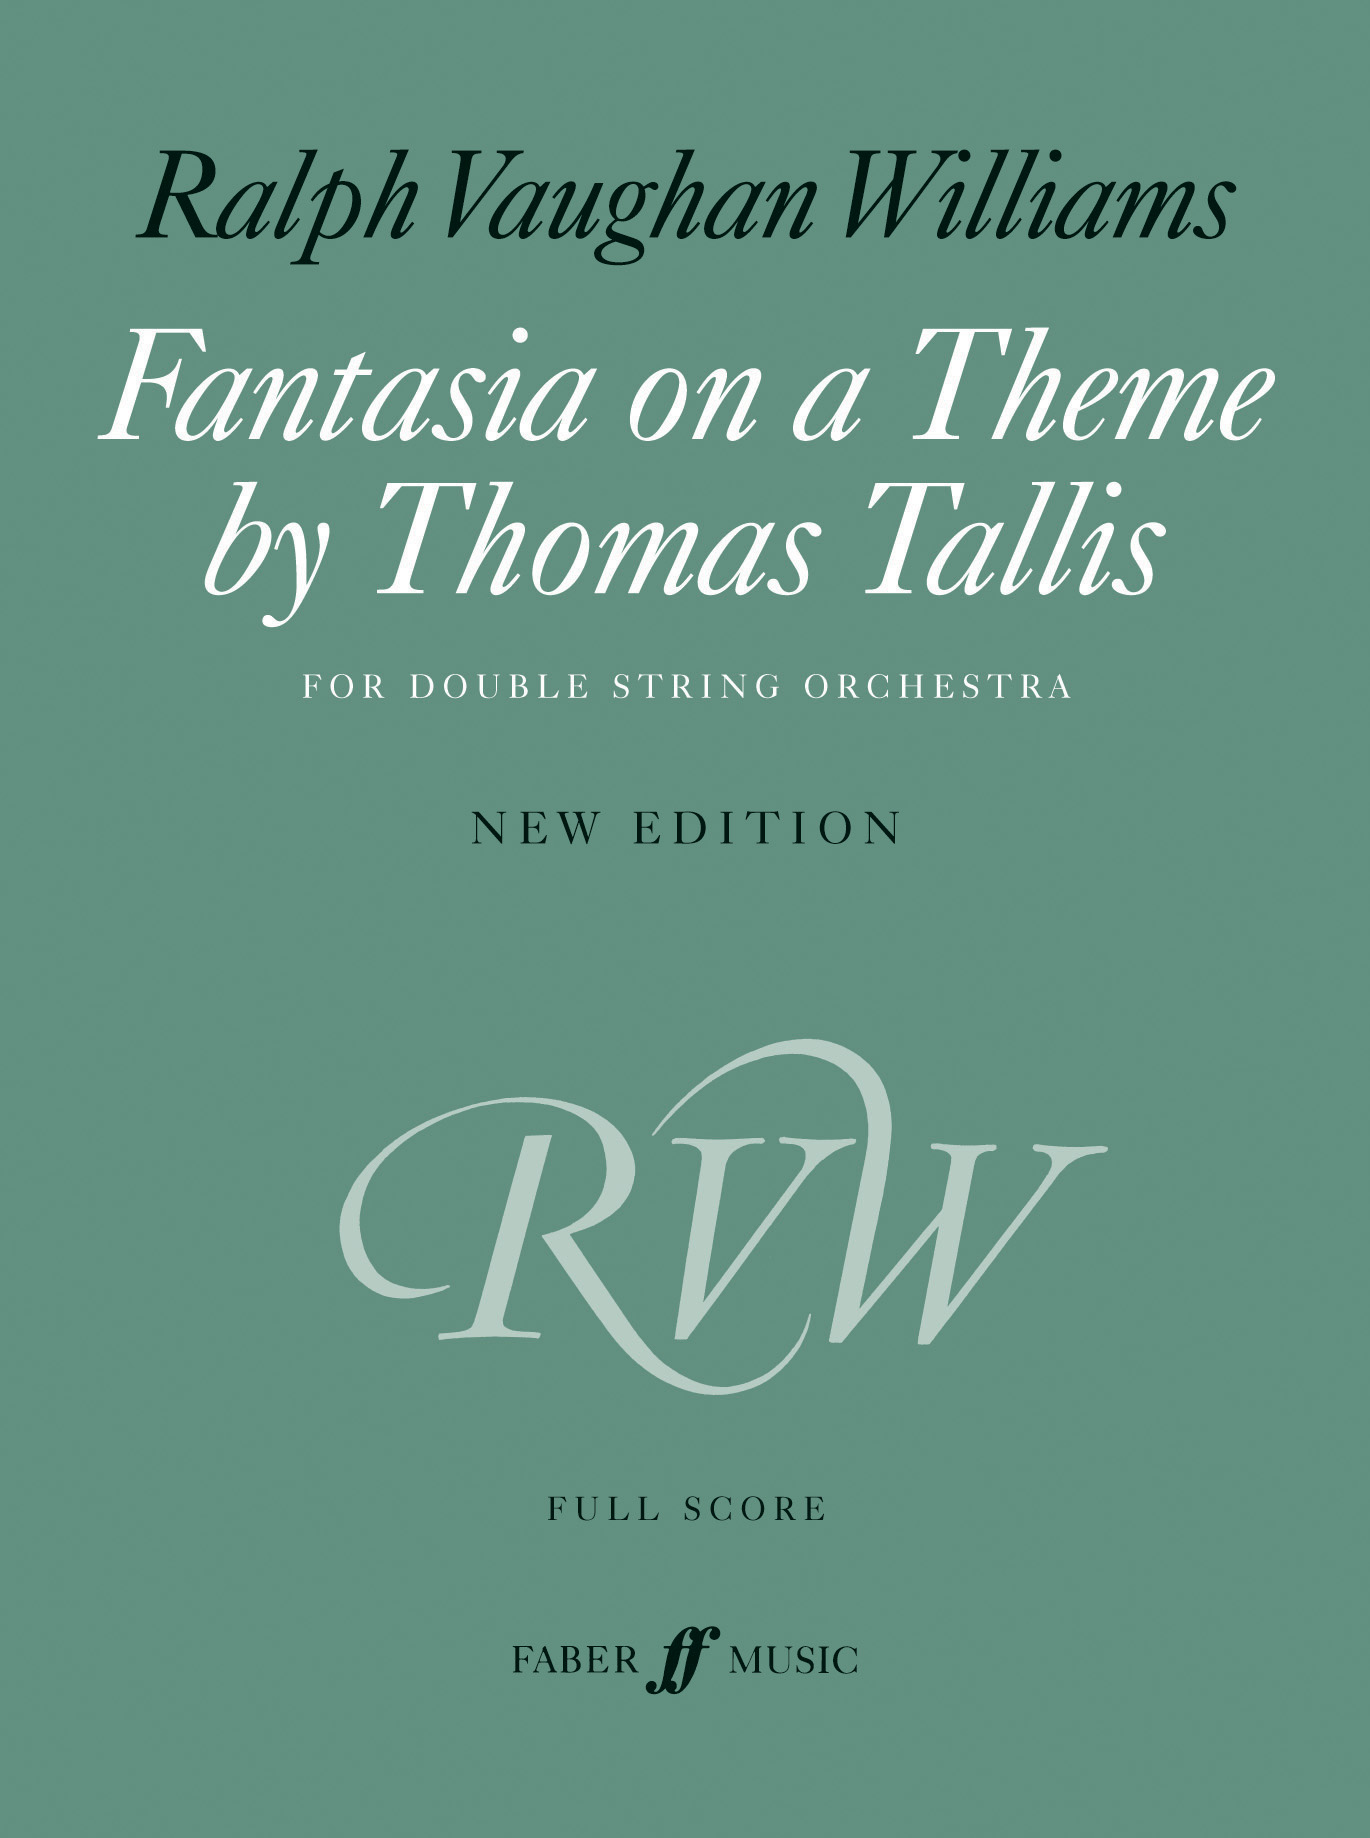 Ralph Vaughan Williams Fantasia On A Theme By Thomas Tallis Faber Music